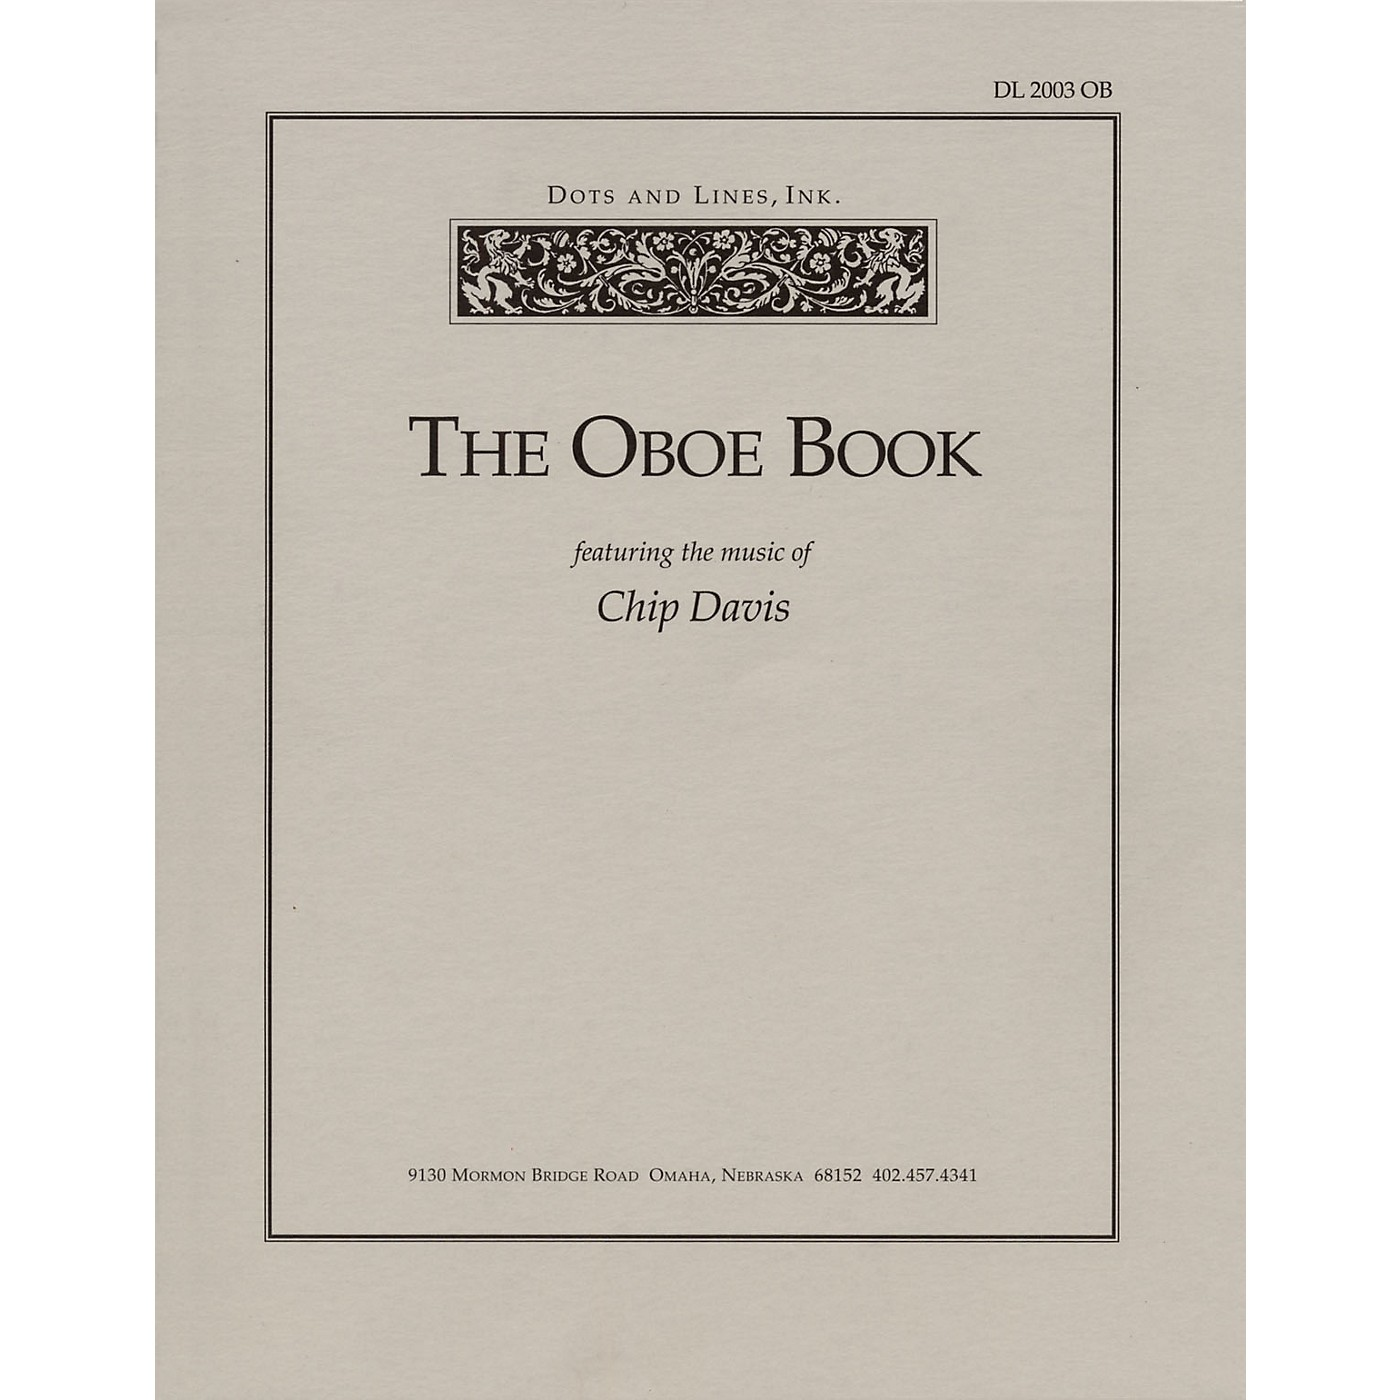 Dots and Lines, Ink. The Oboe Book (Featuring the Music of Chip Davis) Book Series thumbnail